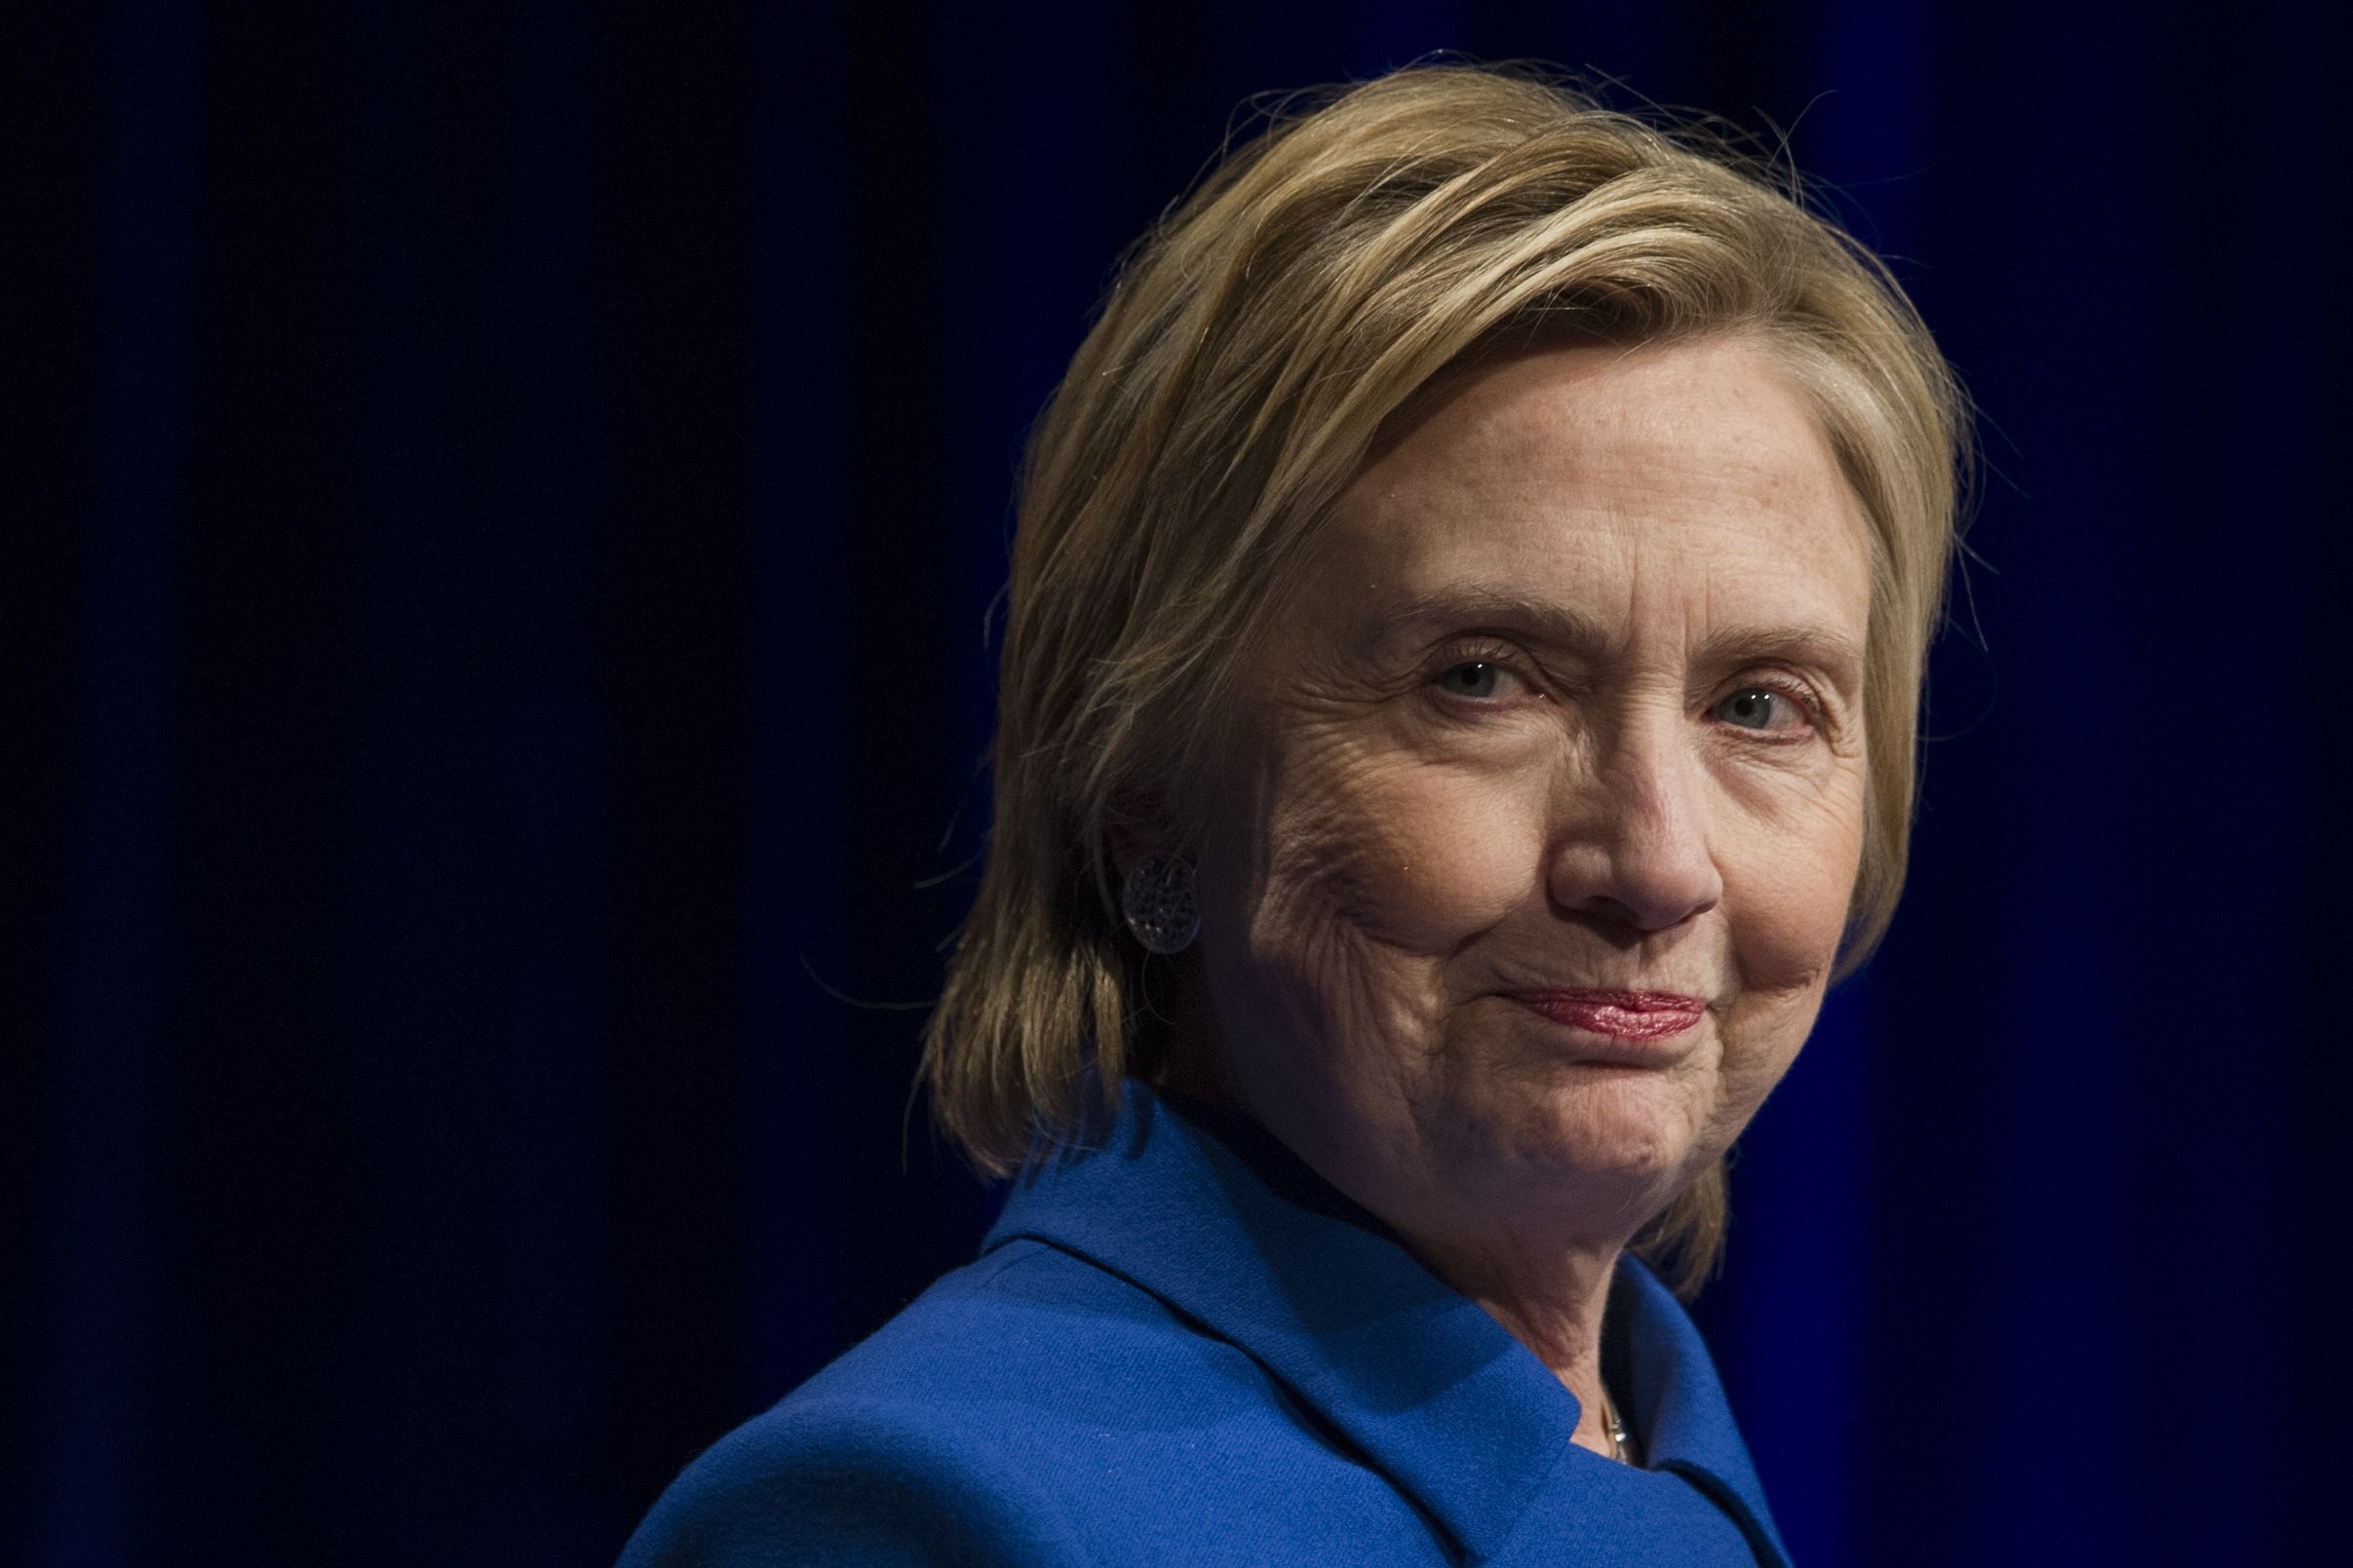 FBI sought evidence of intrusions in Hillary Clinton emails